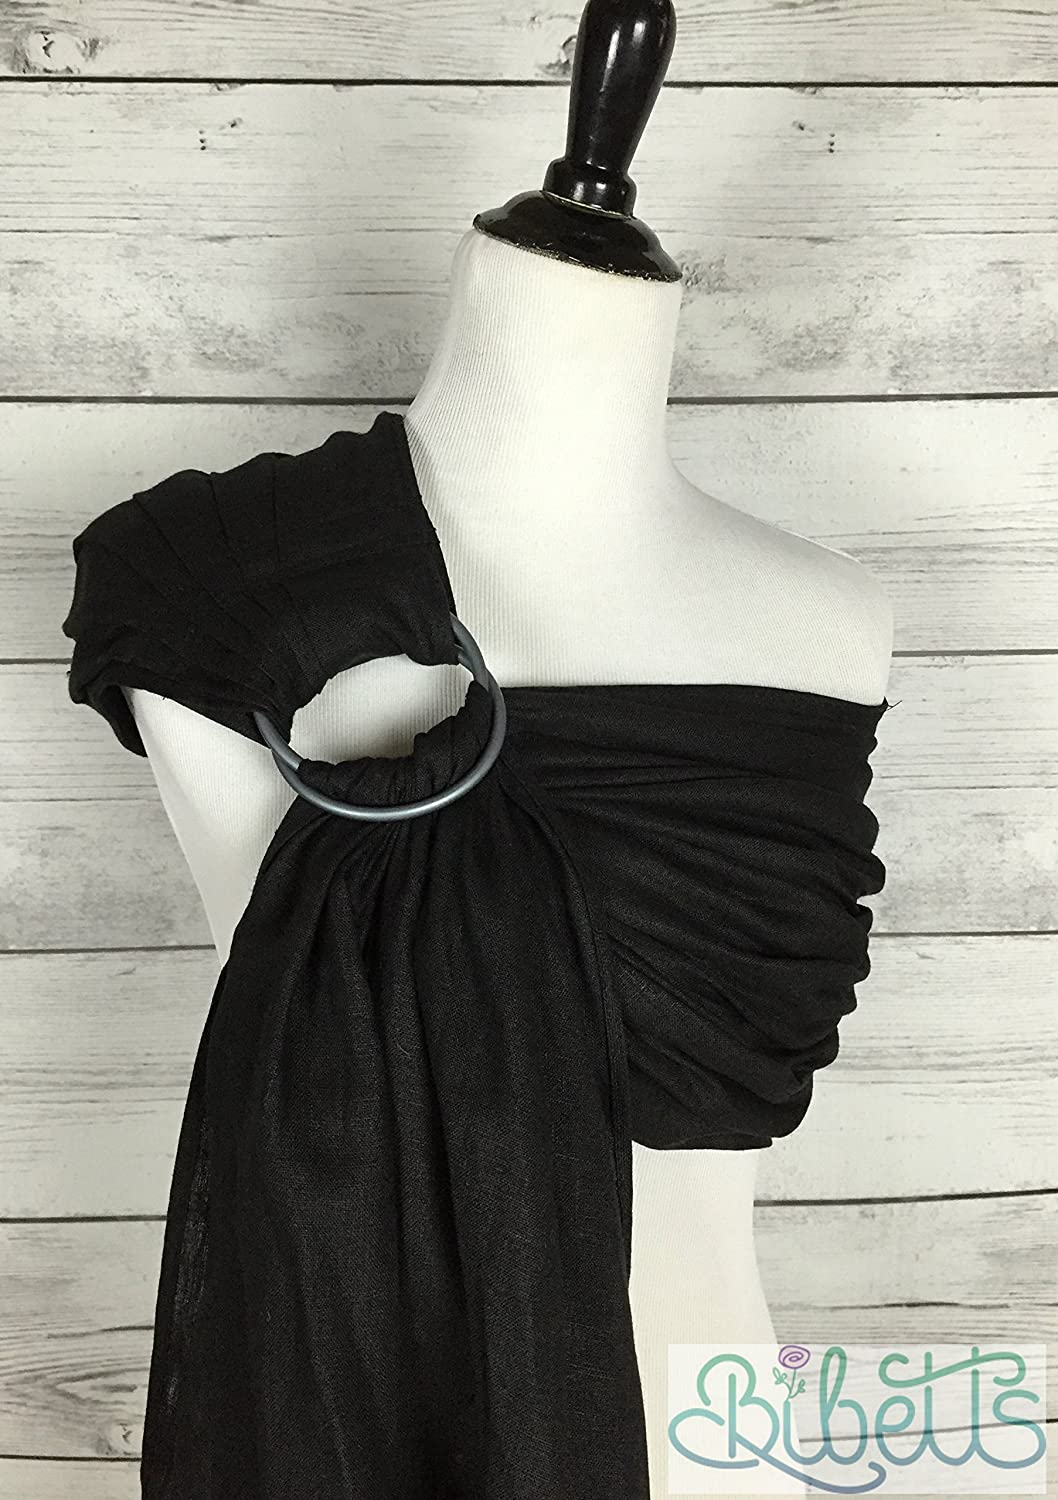 4a73db21d58 Amazon.com   Pure Linen  Black  Ring Sling Baby Carrier   Baby